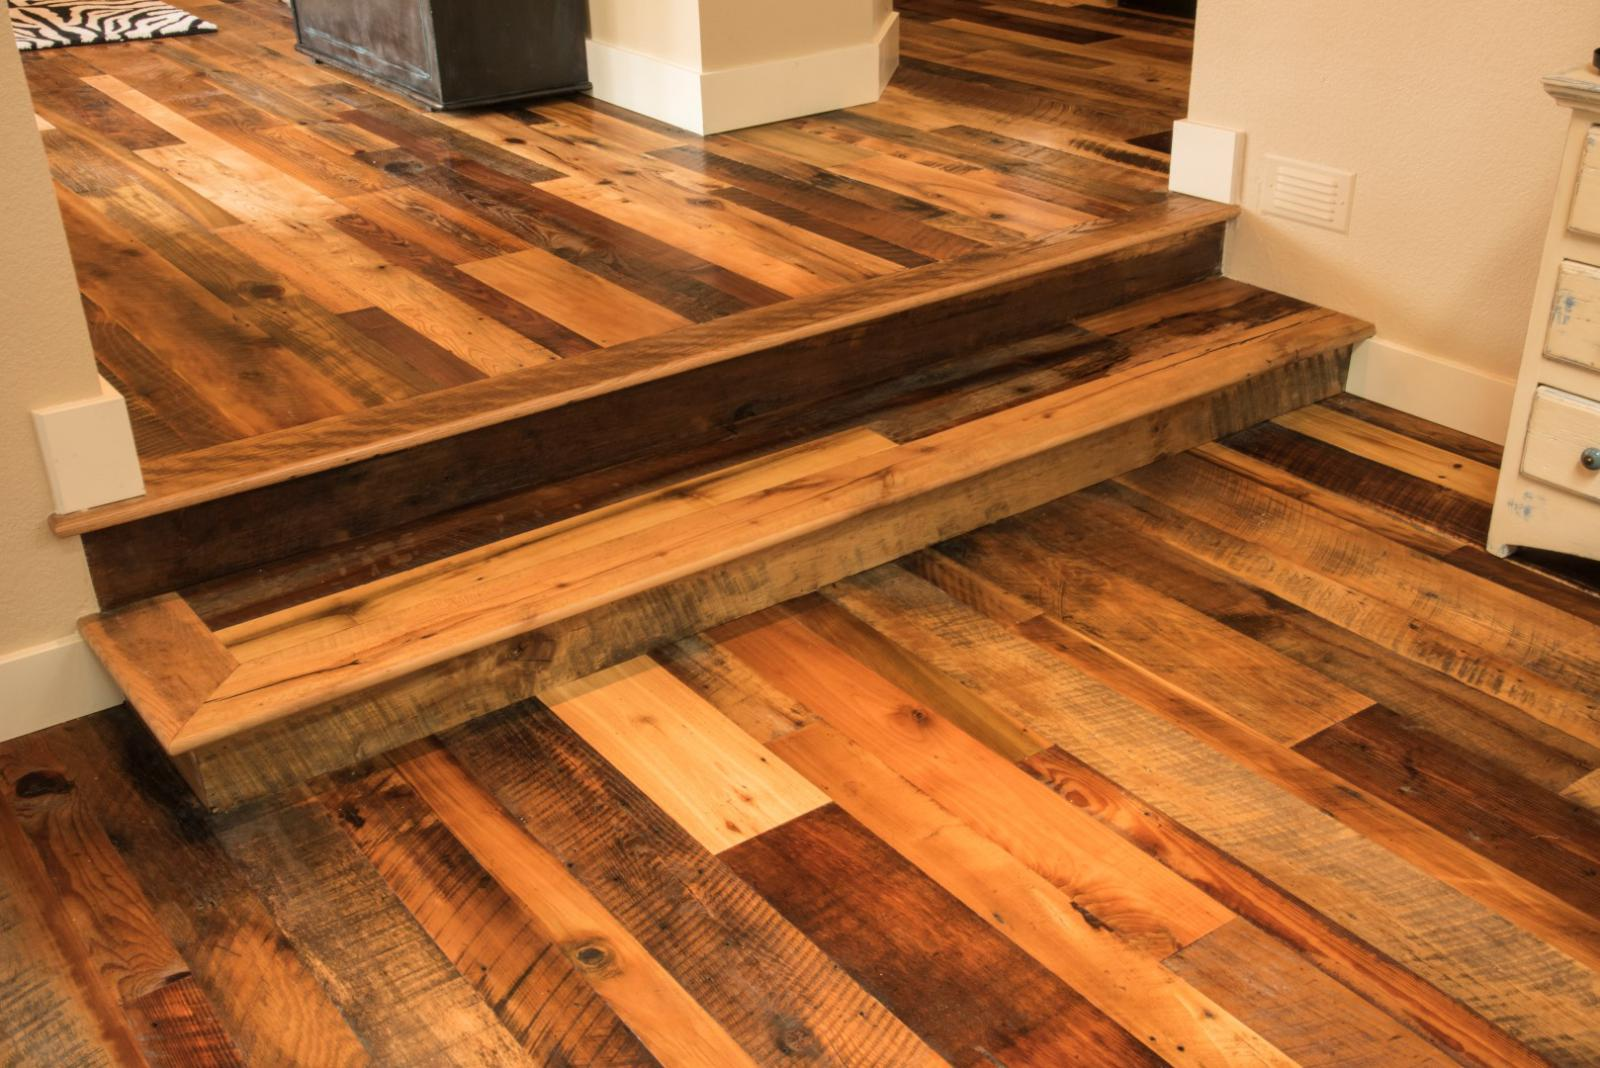 Old world antique reclaimed blend hardwood flooring for Old world floors